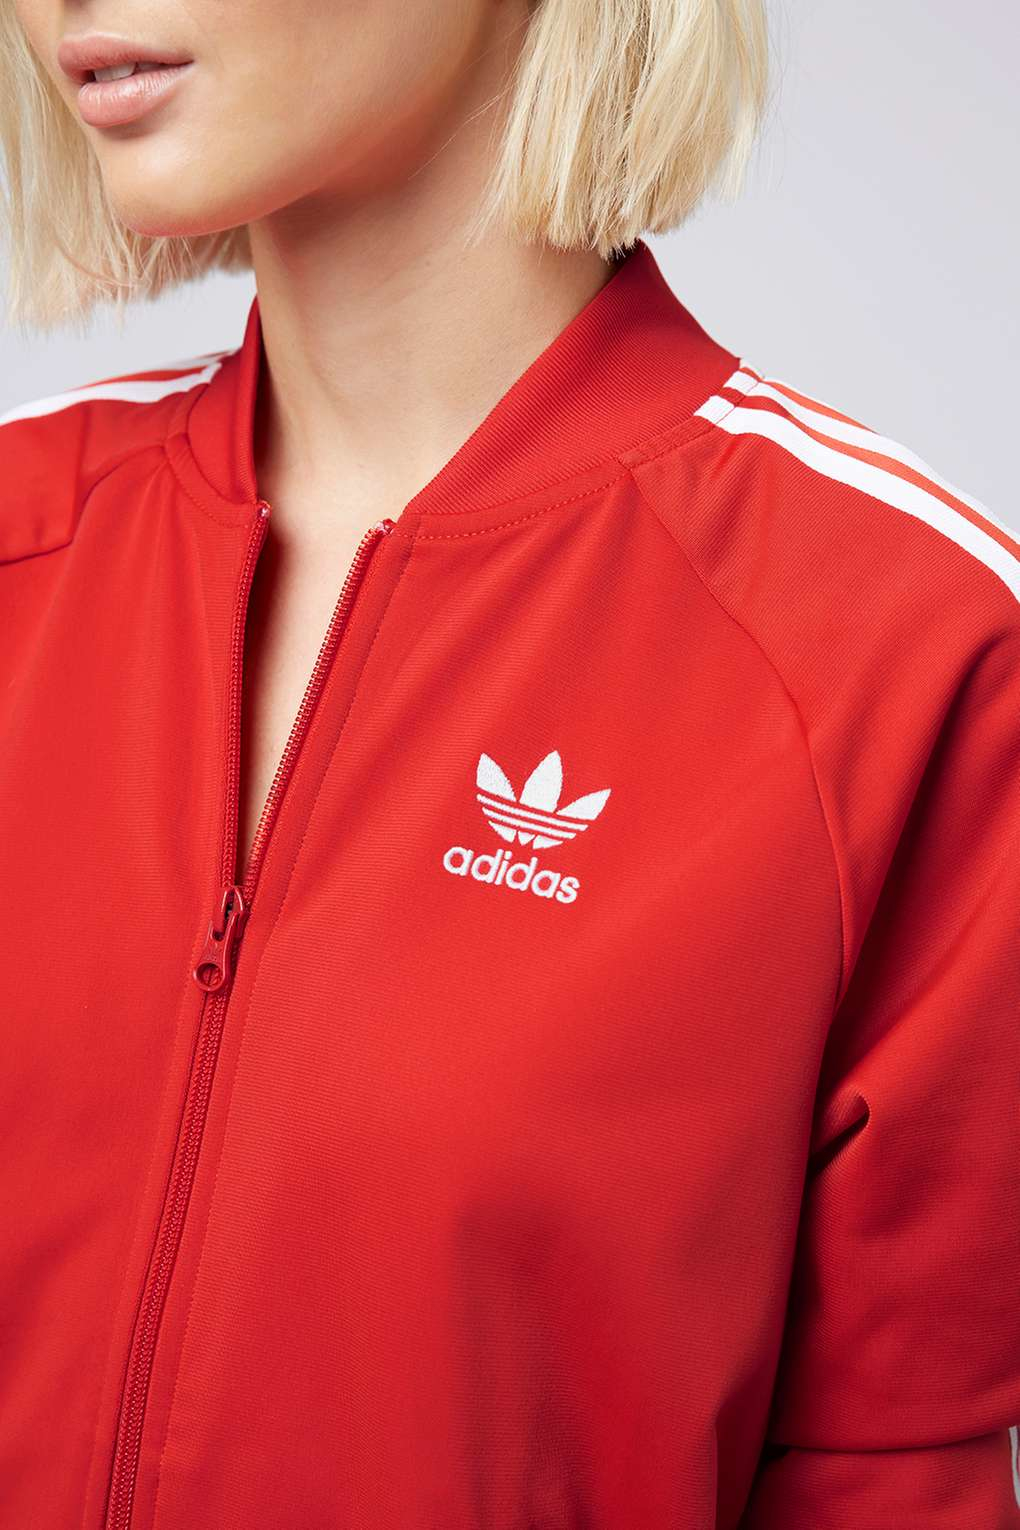 TOPSHOP Super Girl Track Top Jacket By Adidas Originals in Red - Lyst f2e87df38